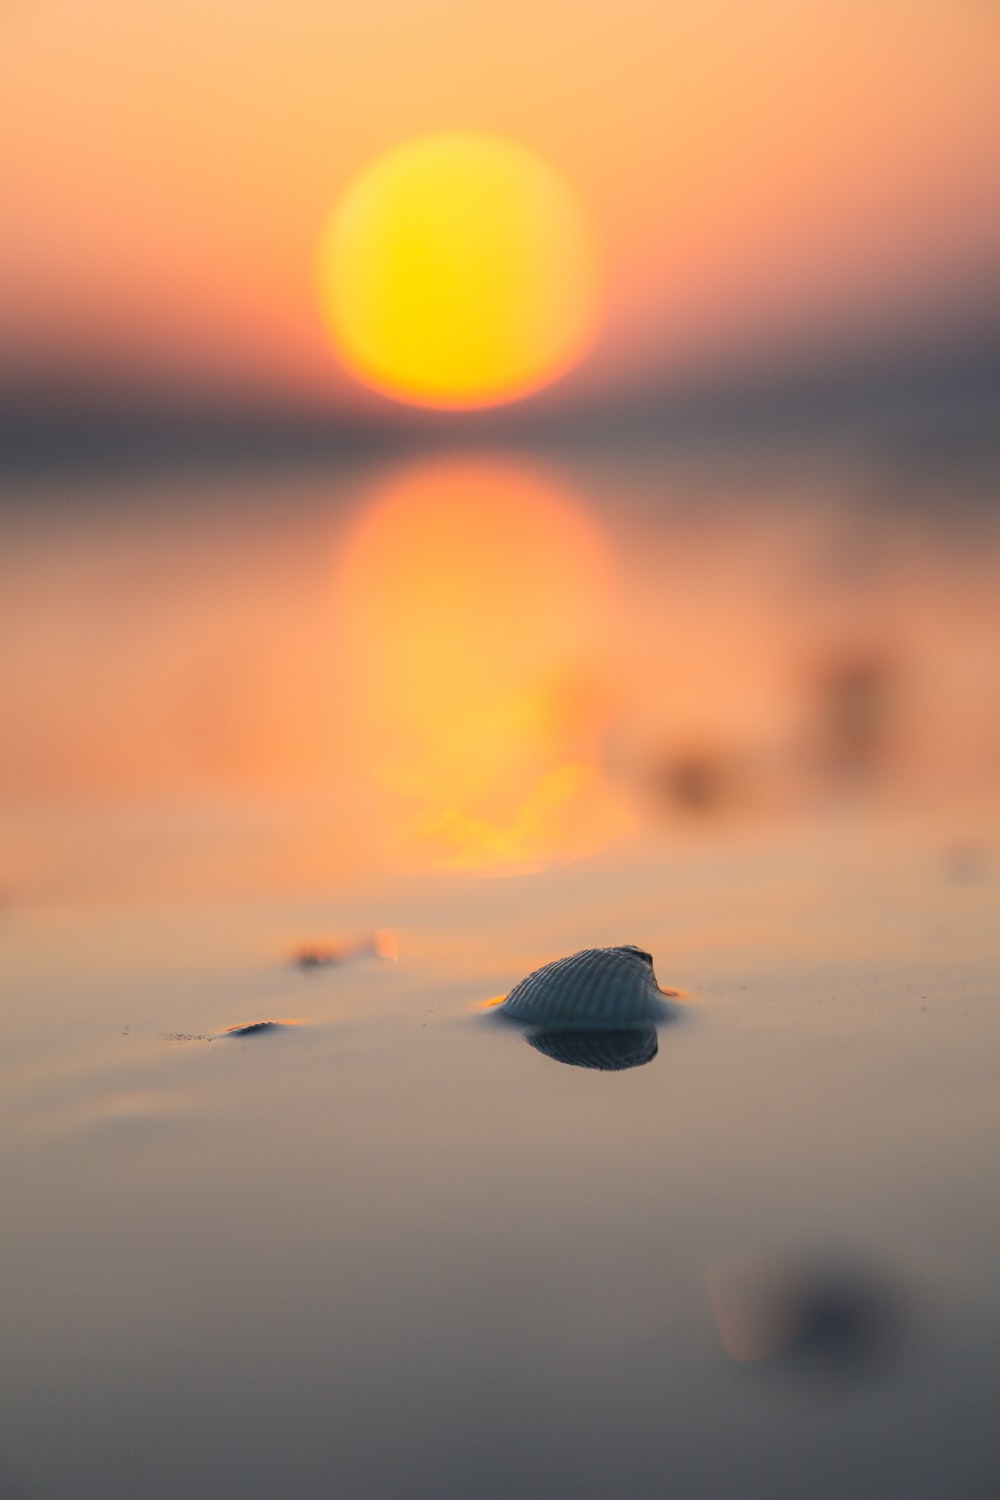 black sea shell on shore during sunset